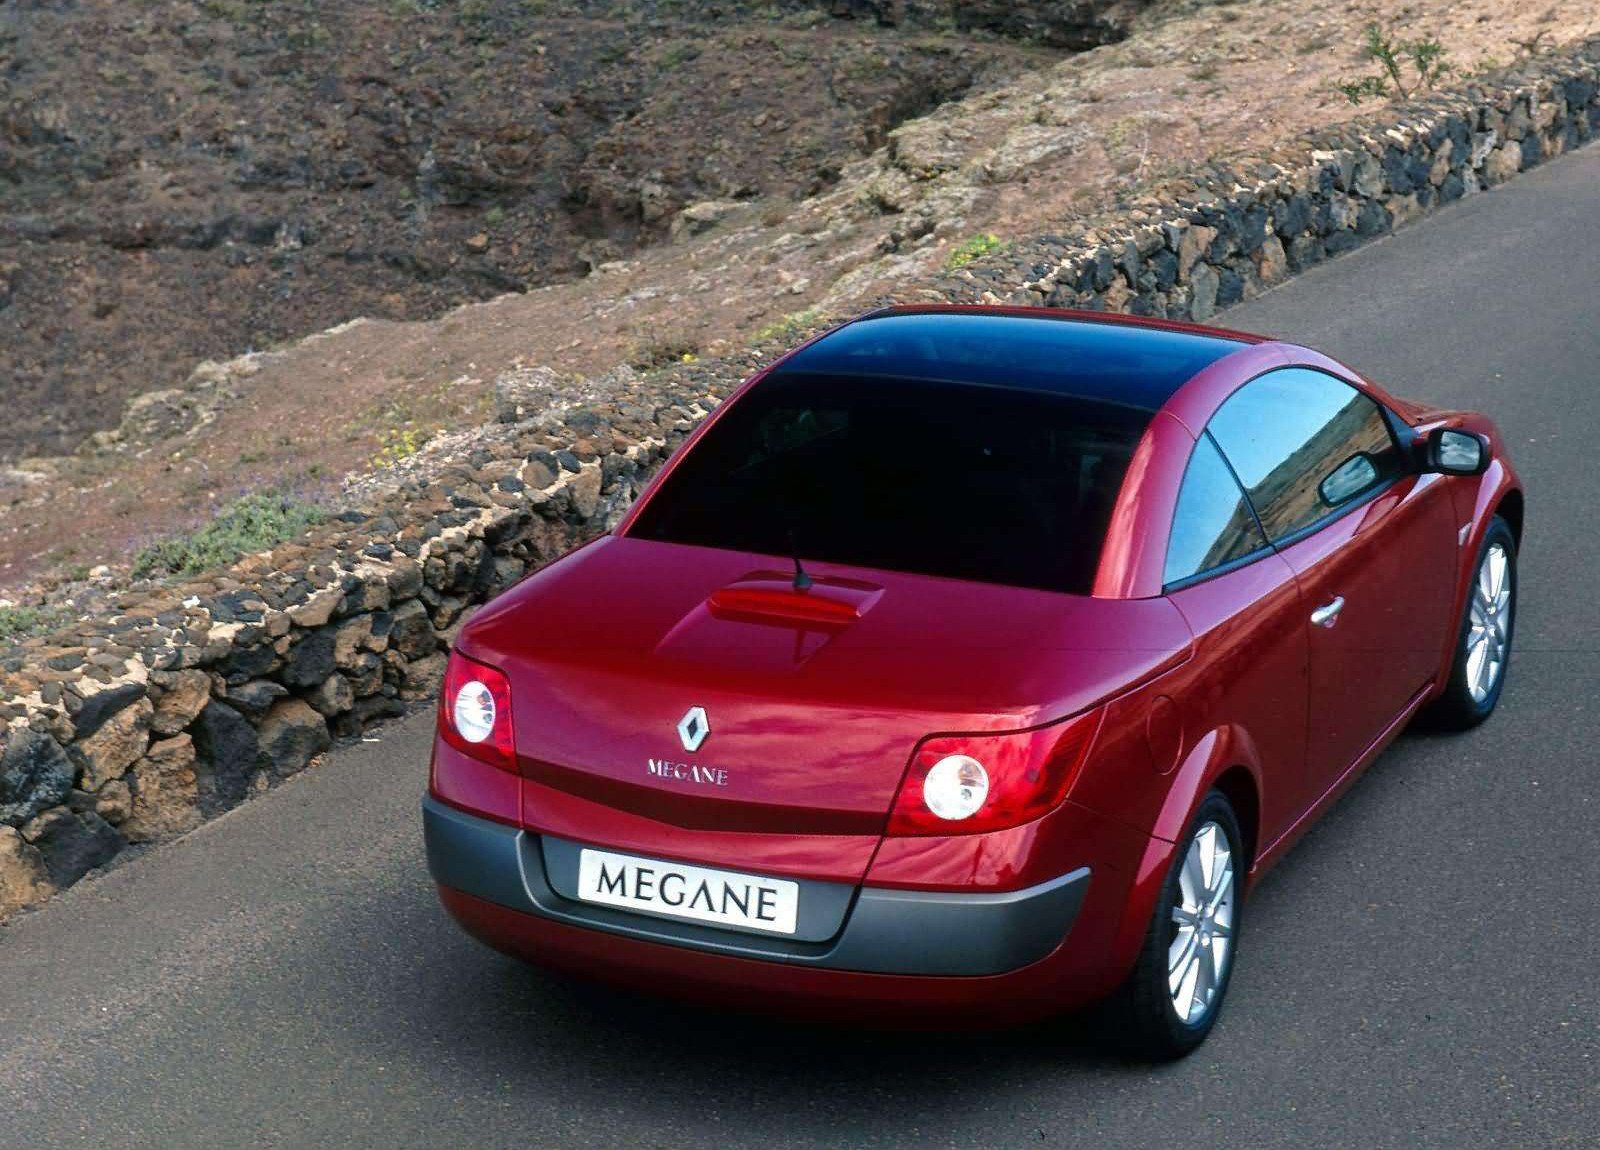 2003 renault megane ii coupecabriolet 2 0 dynmaique version hd pictures. Black Bedroom Furniture Sets. Home Design Ideas